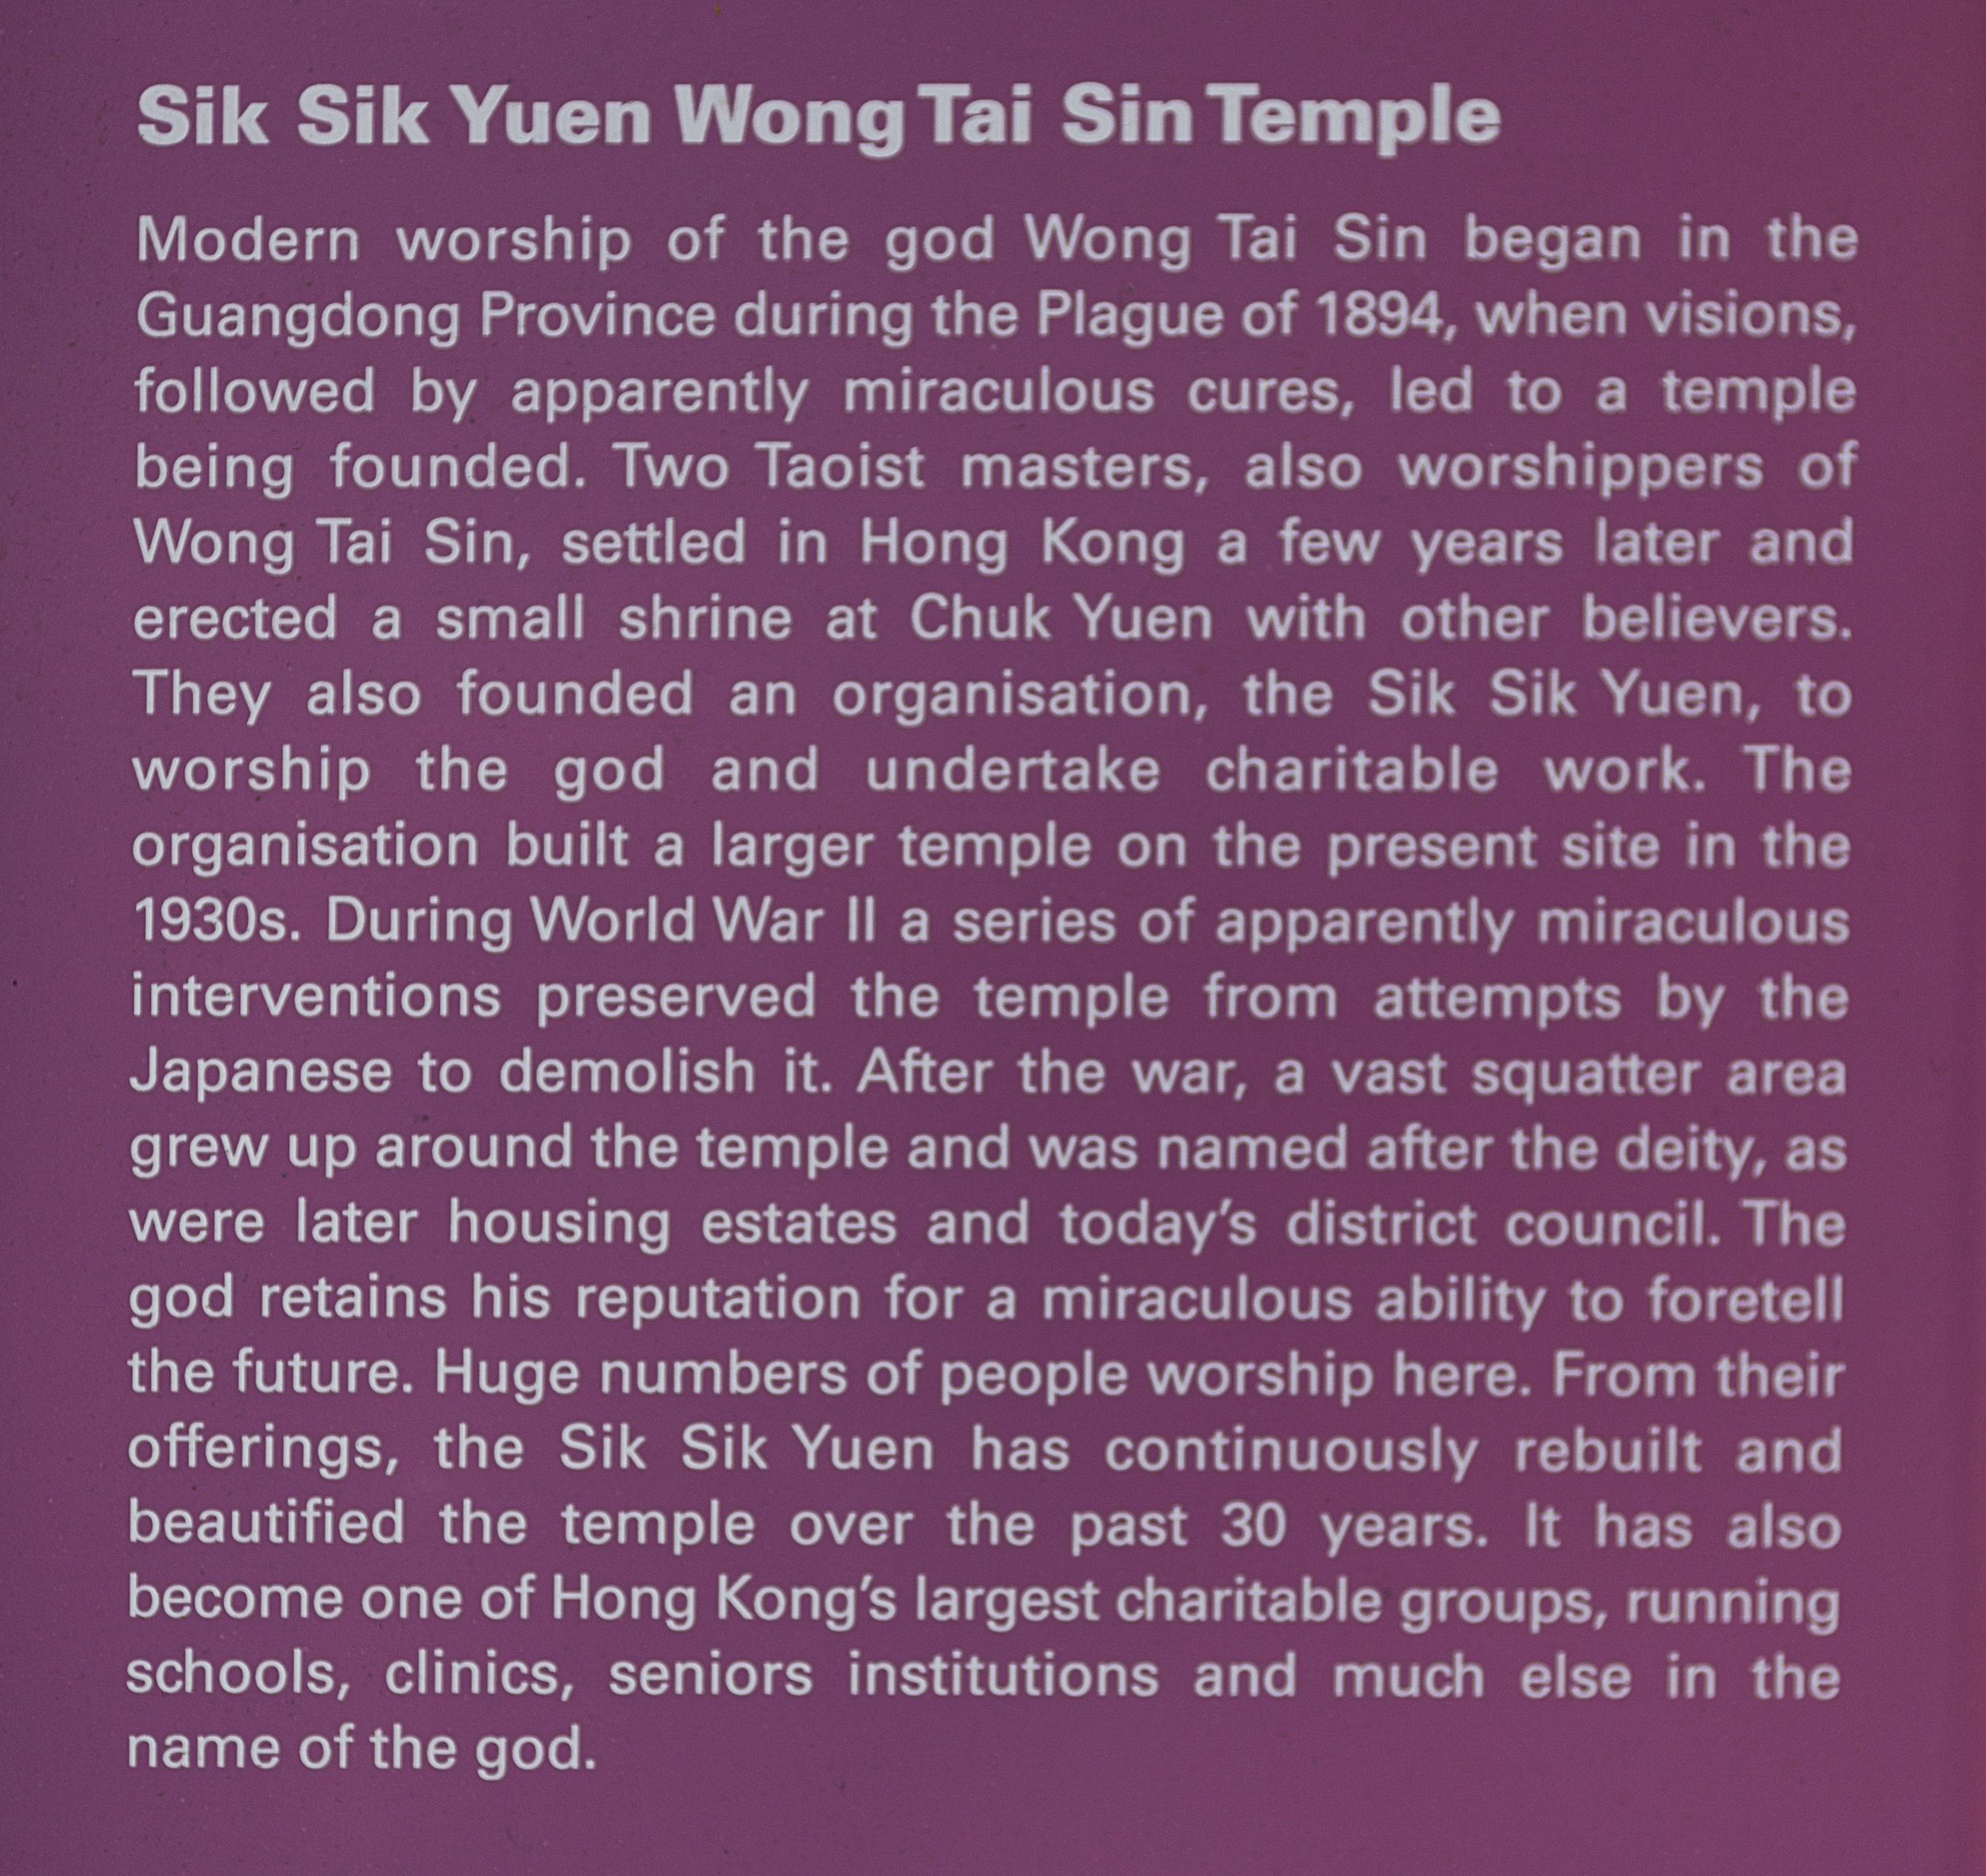 This is what the information sign says about the temple and its history